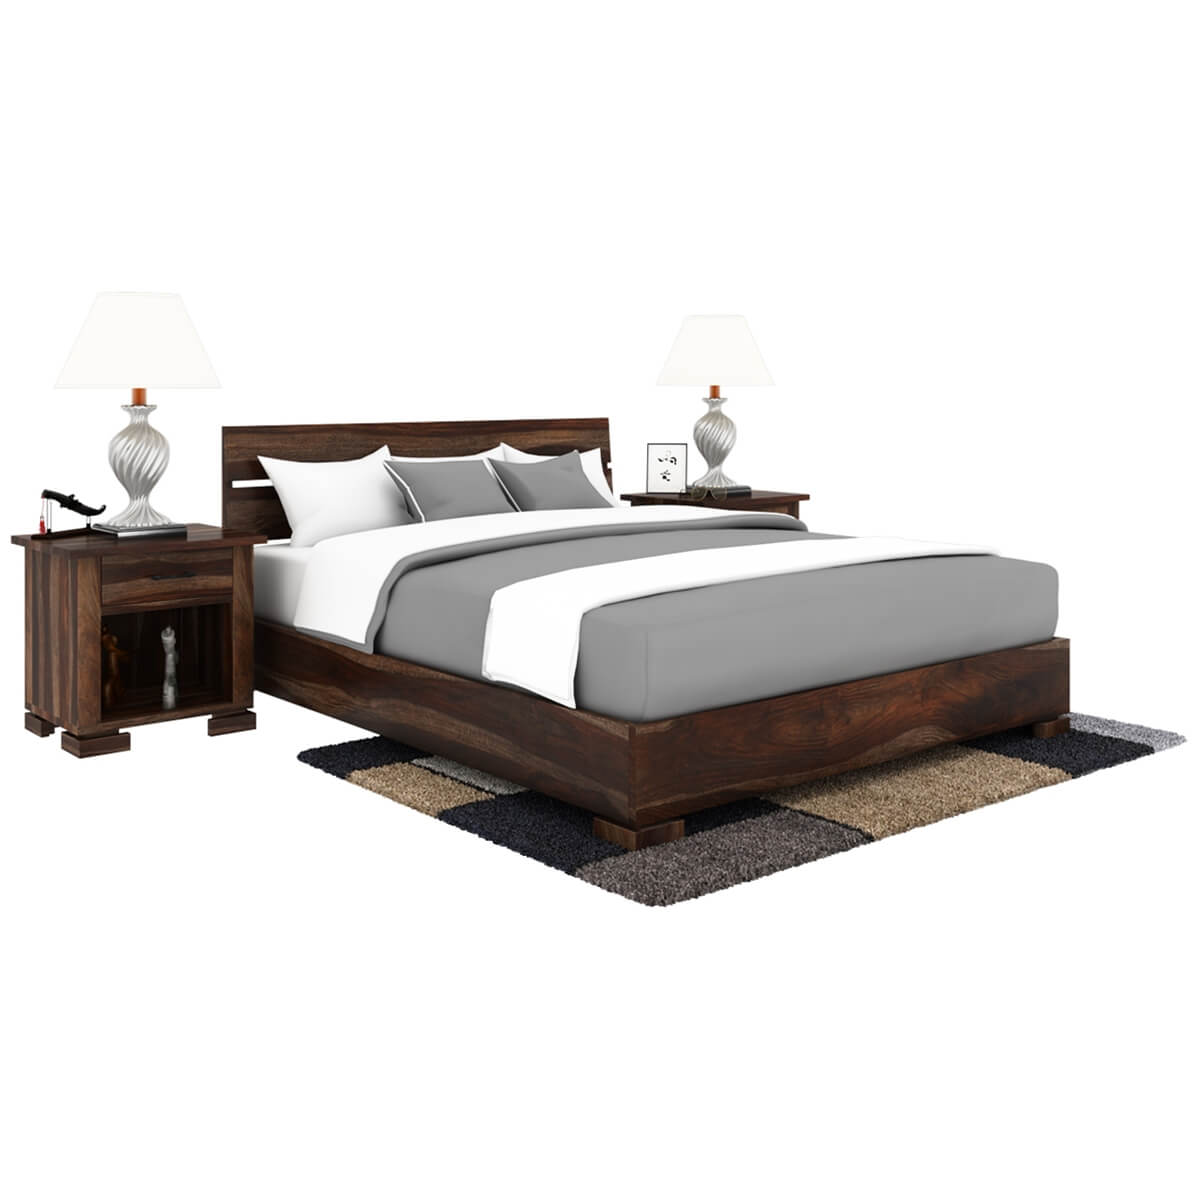 Solid Wood Bed Athena Handcrafted Solid Wood Platform Bed